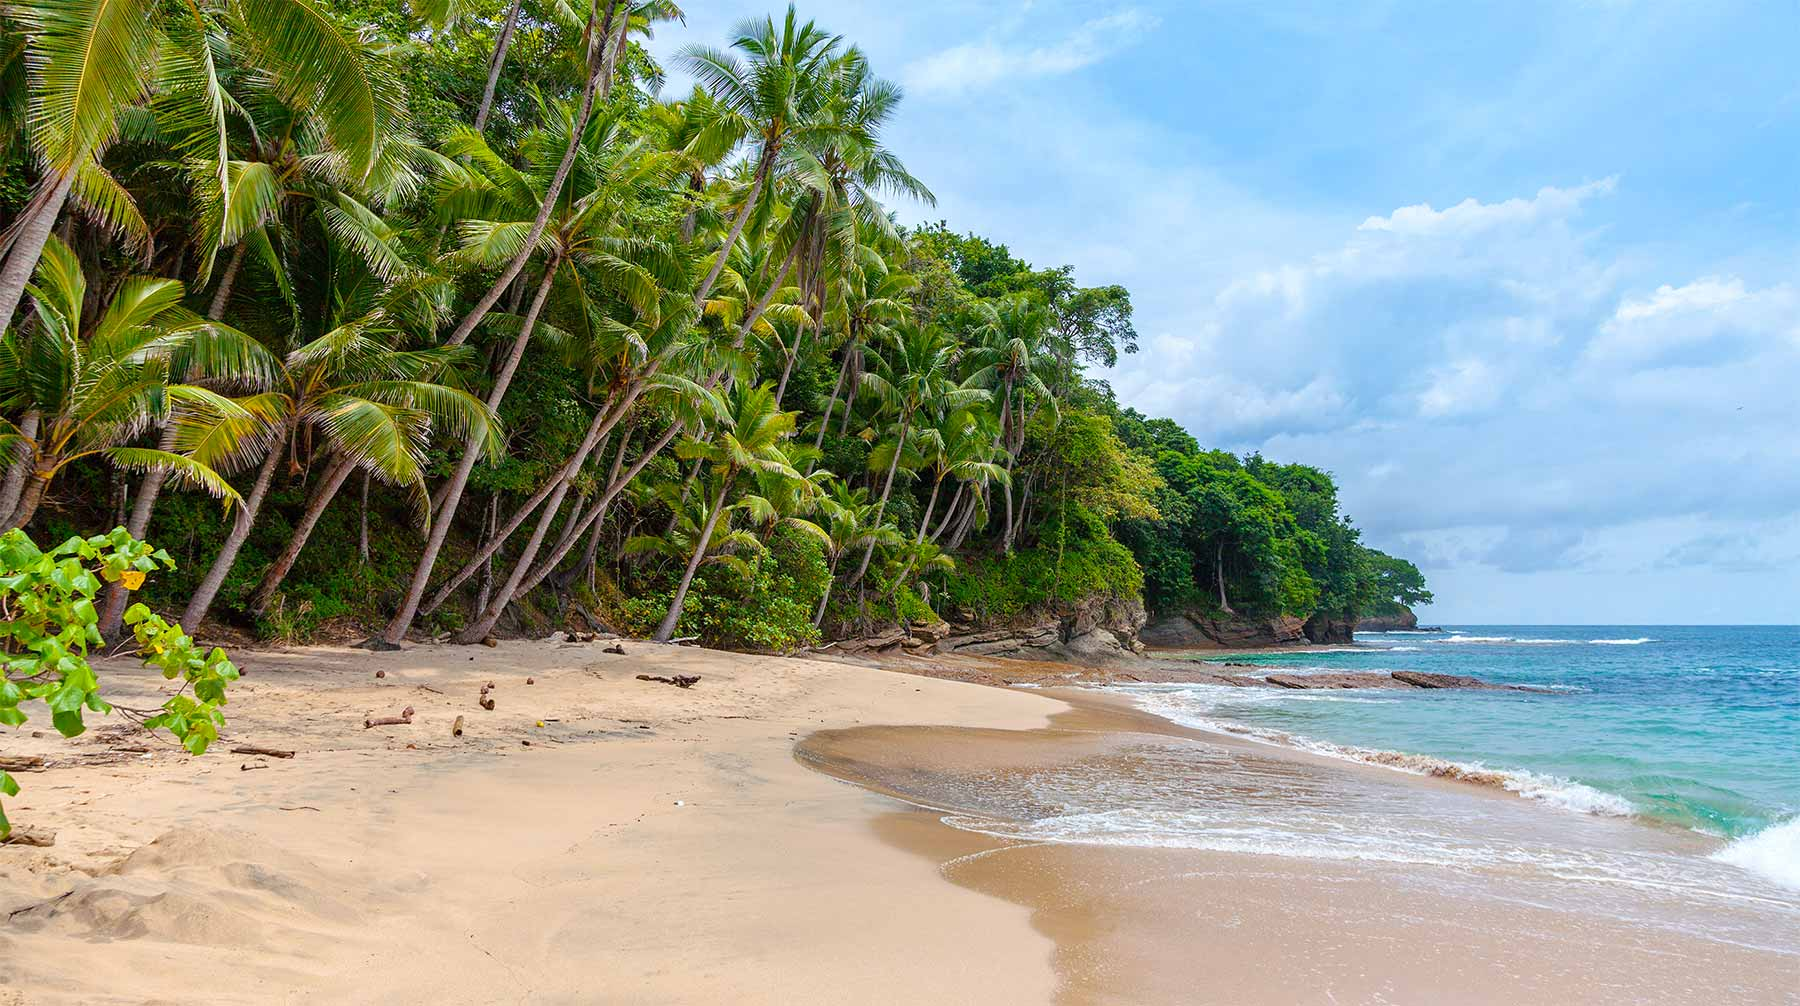 Playa Blanca, Saboga in Panama. Photo: Rowan Heuvel / Unsplash